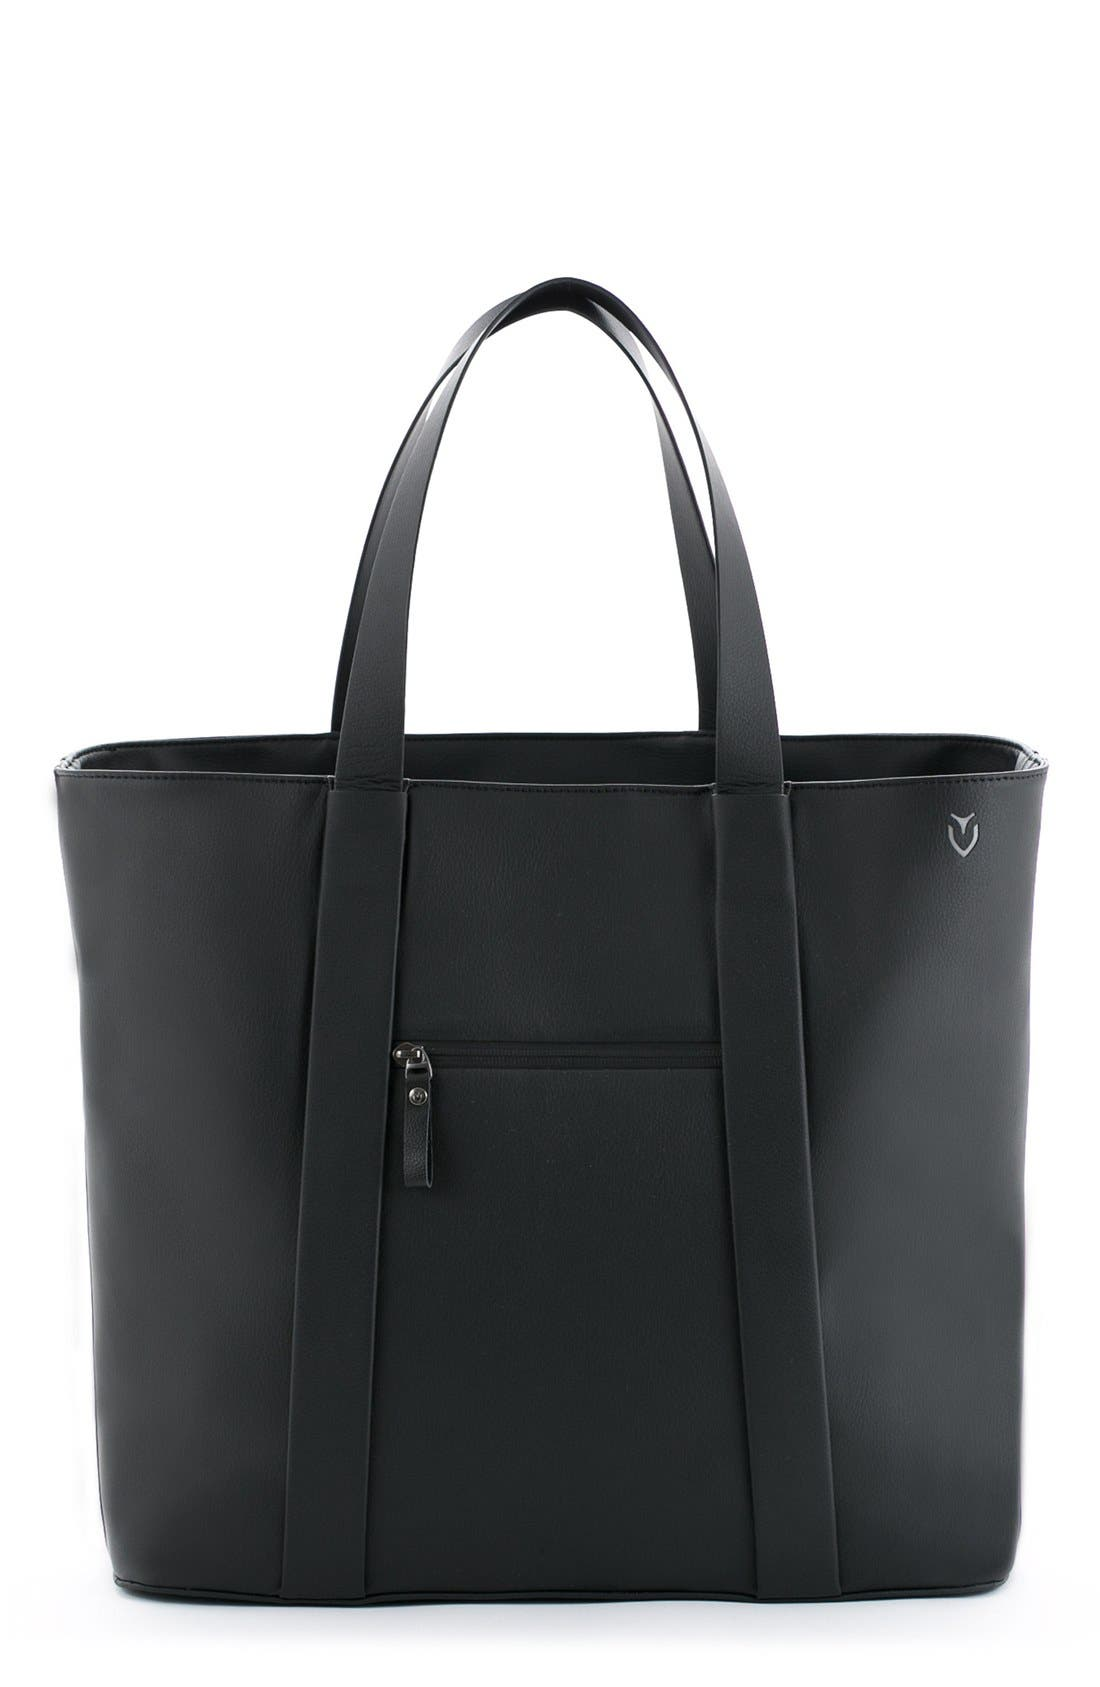 VESSEL Signature Leather Tote Bag